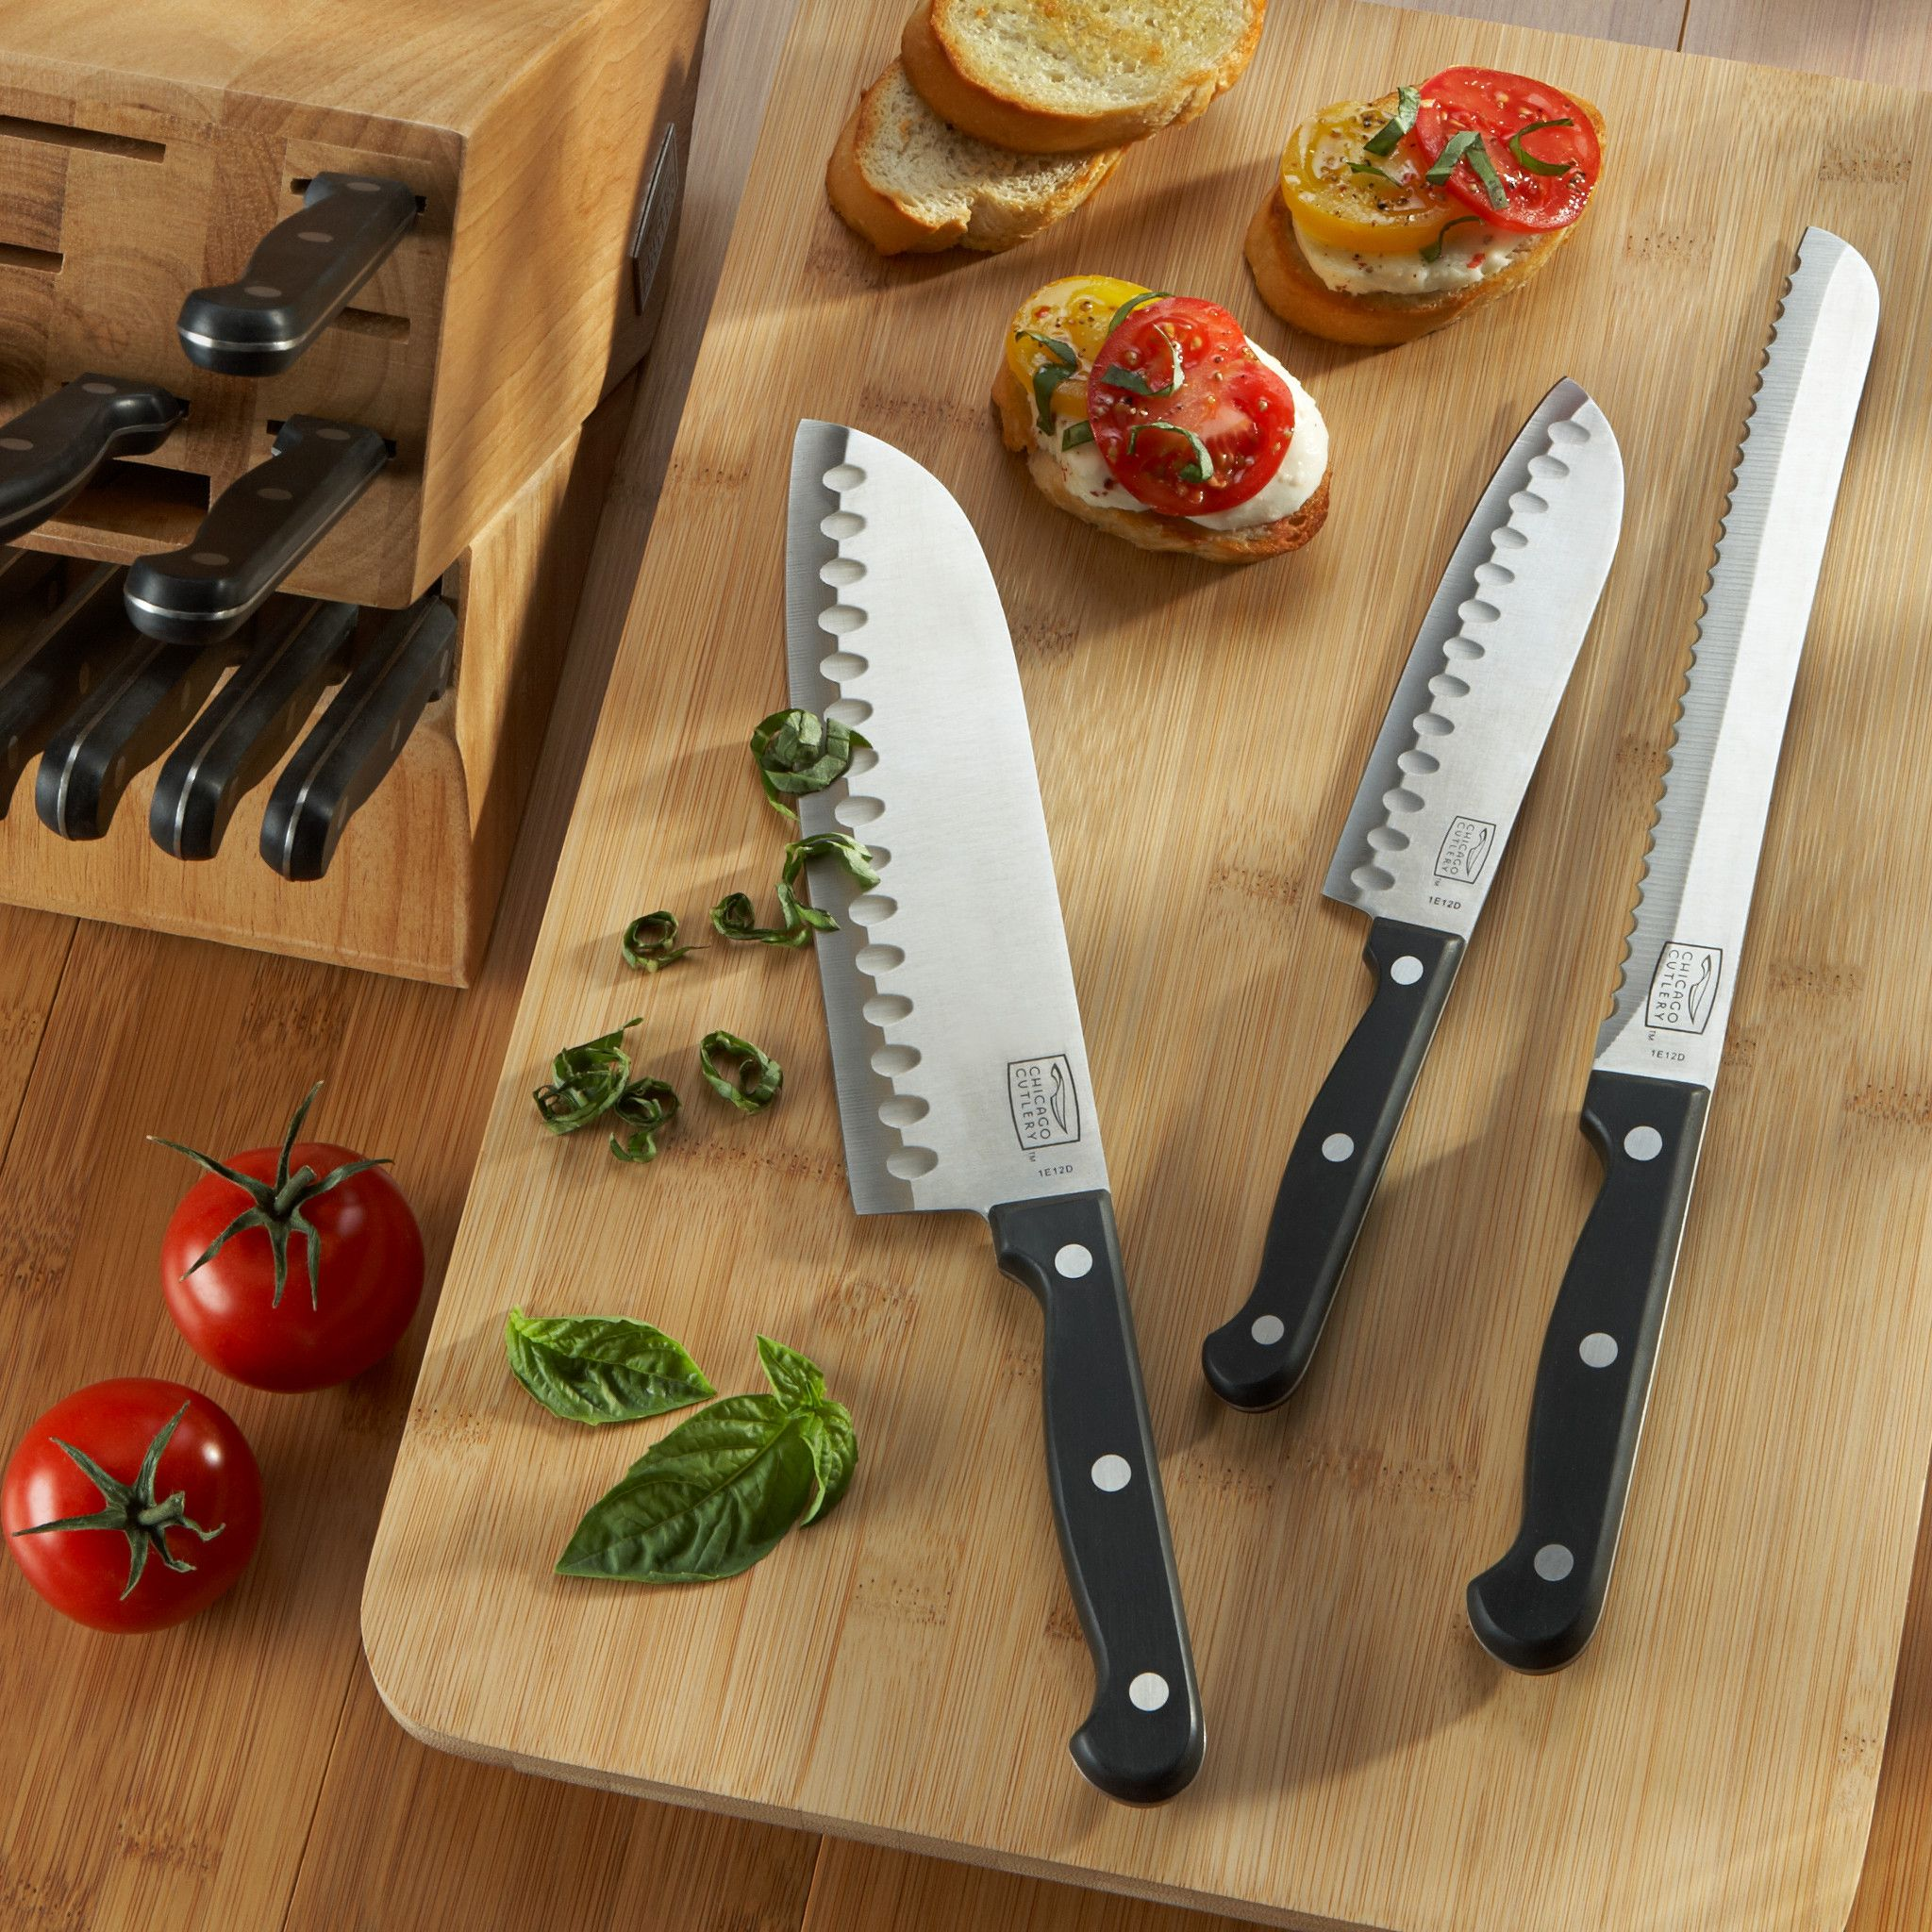 Chicago Cutlery Essentials 15-Piece Knife Block Set